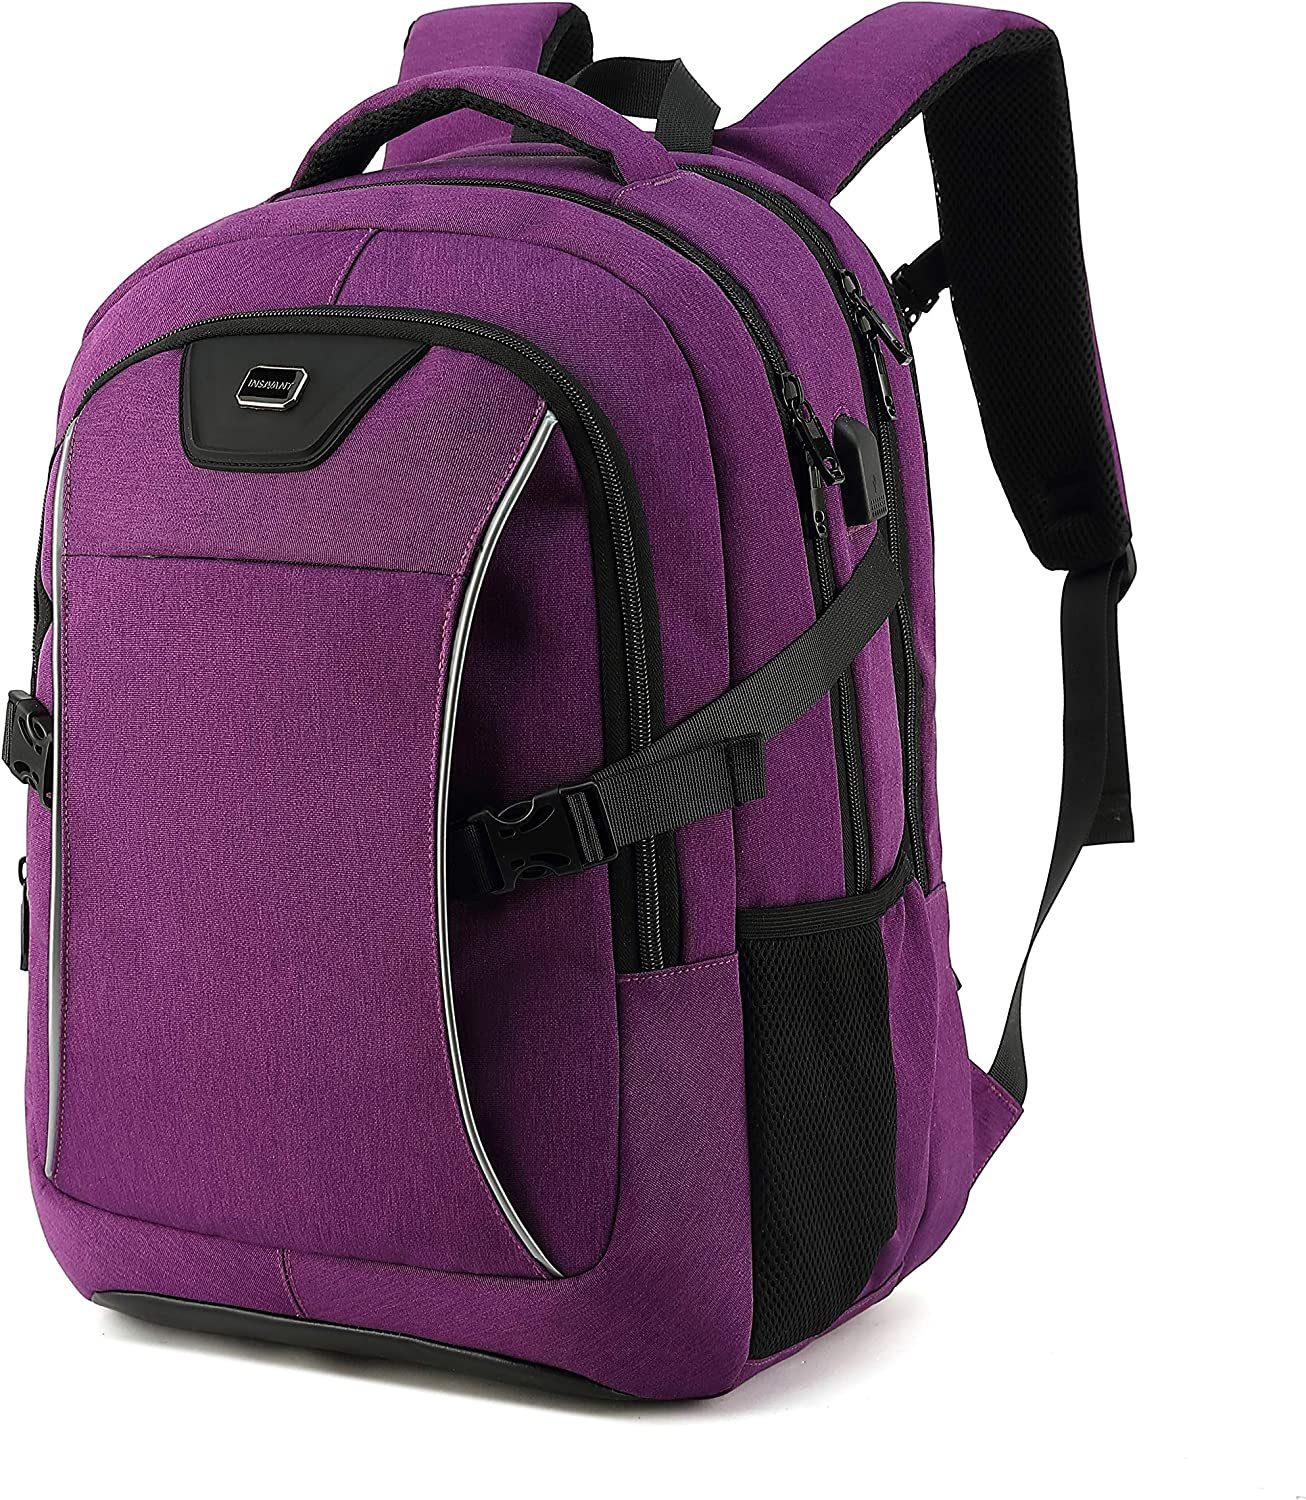 Travel Laptop Backpack, Drop Protection Computer Backpacks Durable Hiking Work Business Daypack Water Resistant Schoolbag with USB Charging Port, Gifts for Men Women Boys Girls fits 15.6 Inch Laptops(15.6 Inch, Purple)